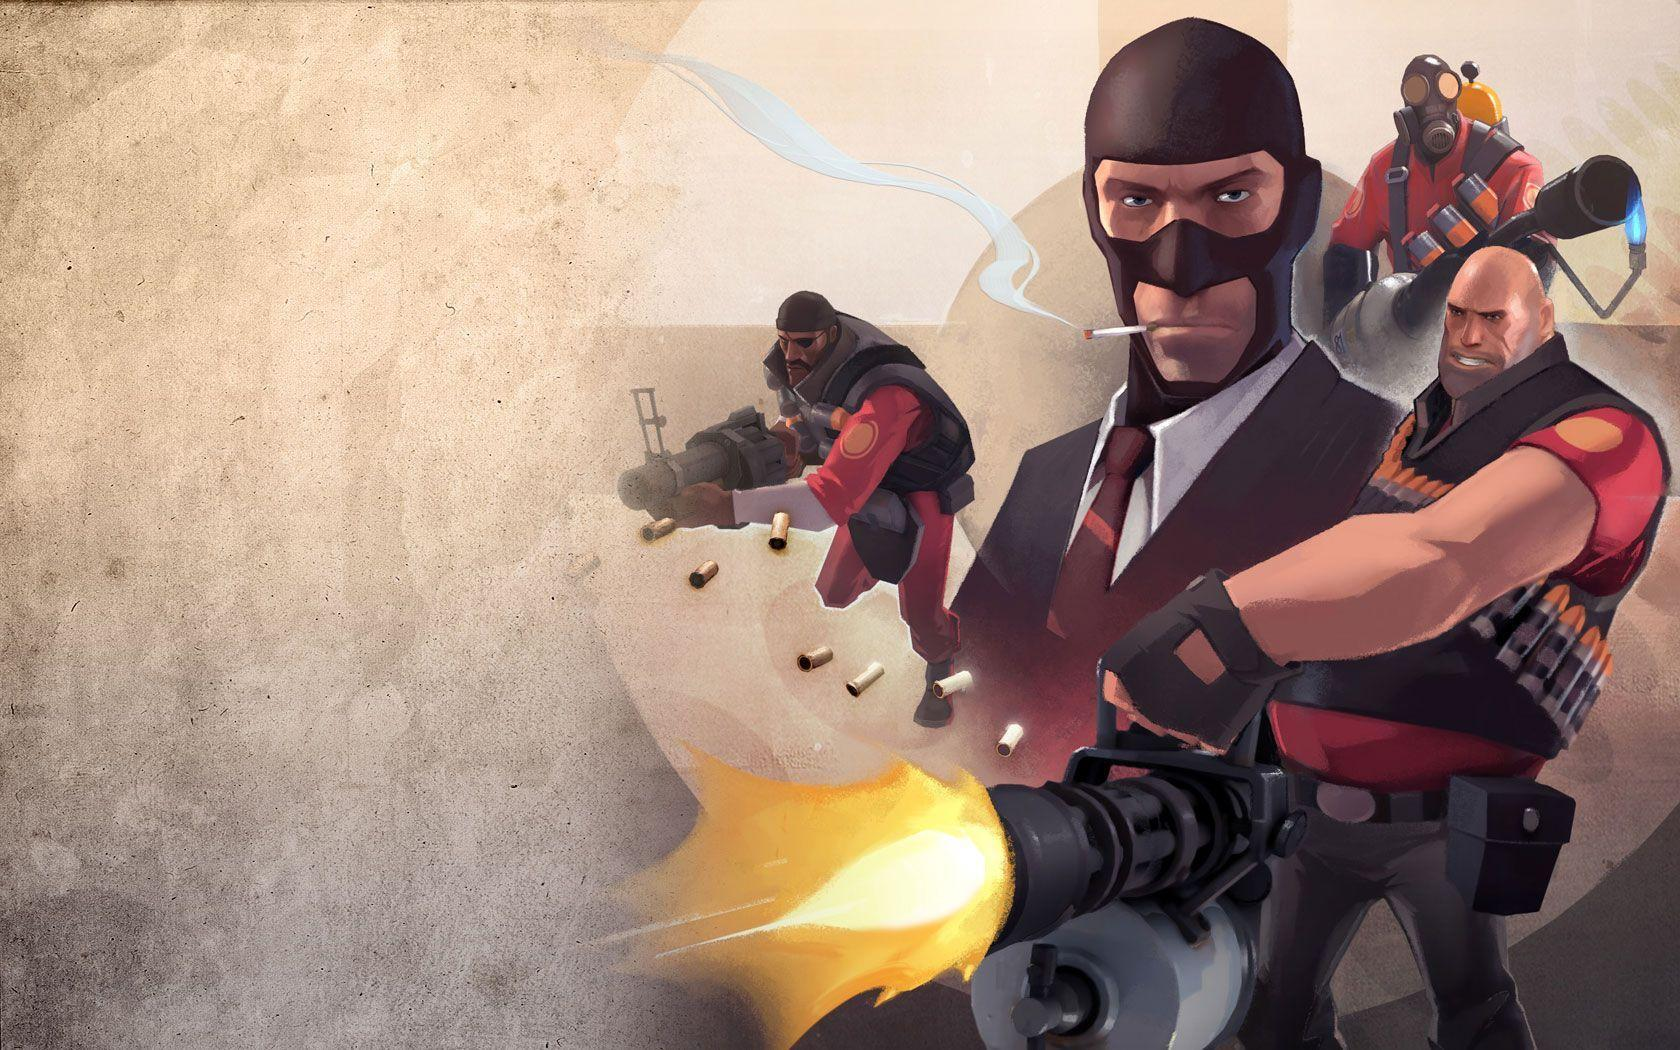 Free Download Team Fortress 2 Backgrounds 1680x1050 For Your